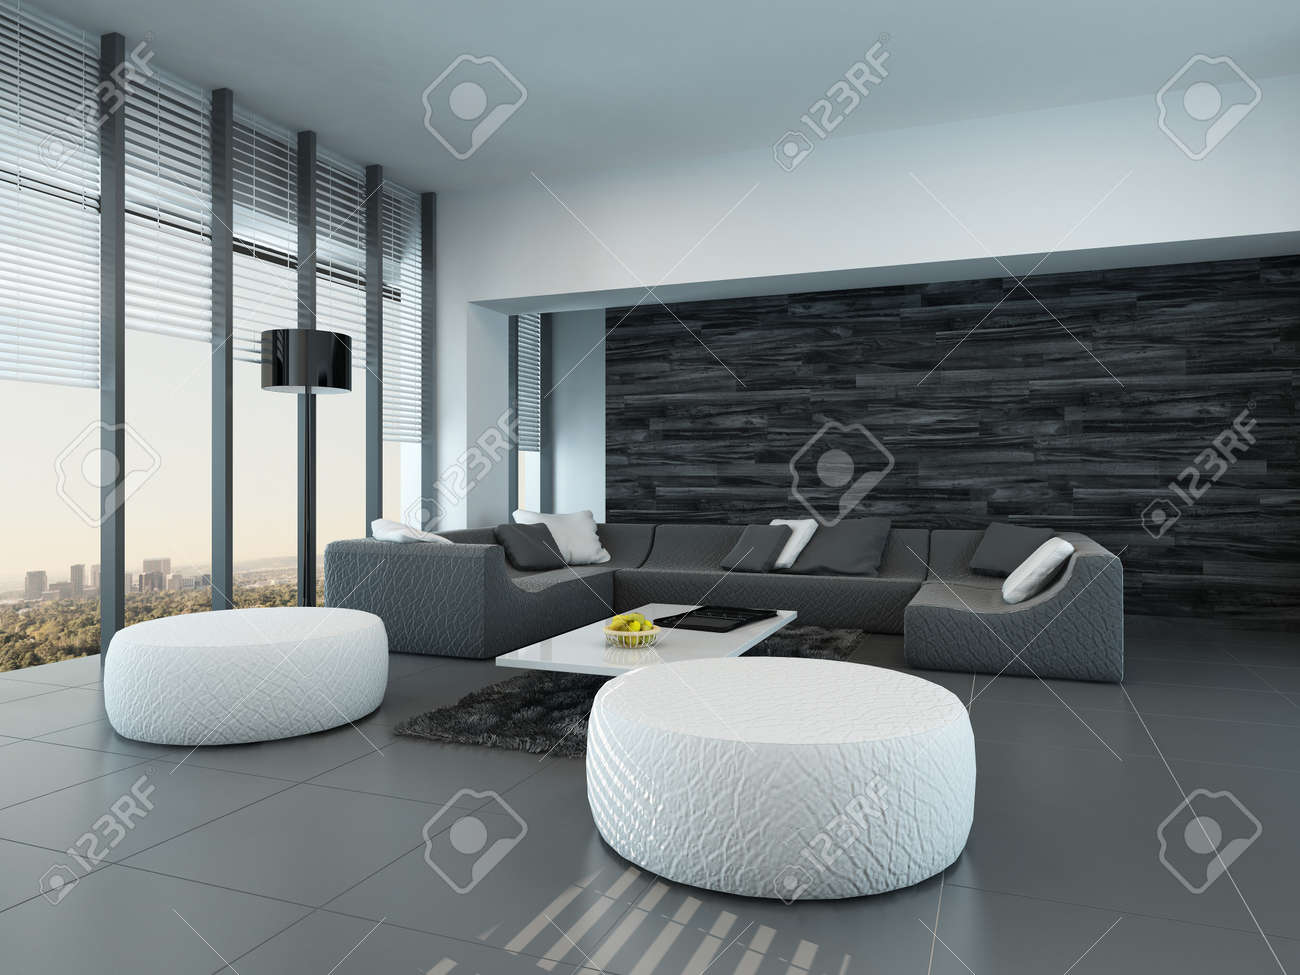 Tilted Perspective Of A Modern Grey And White Living Room Interior With  Ottomans And A Large